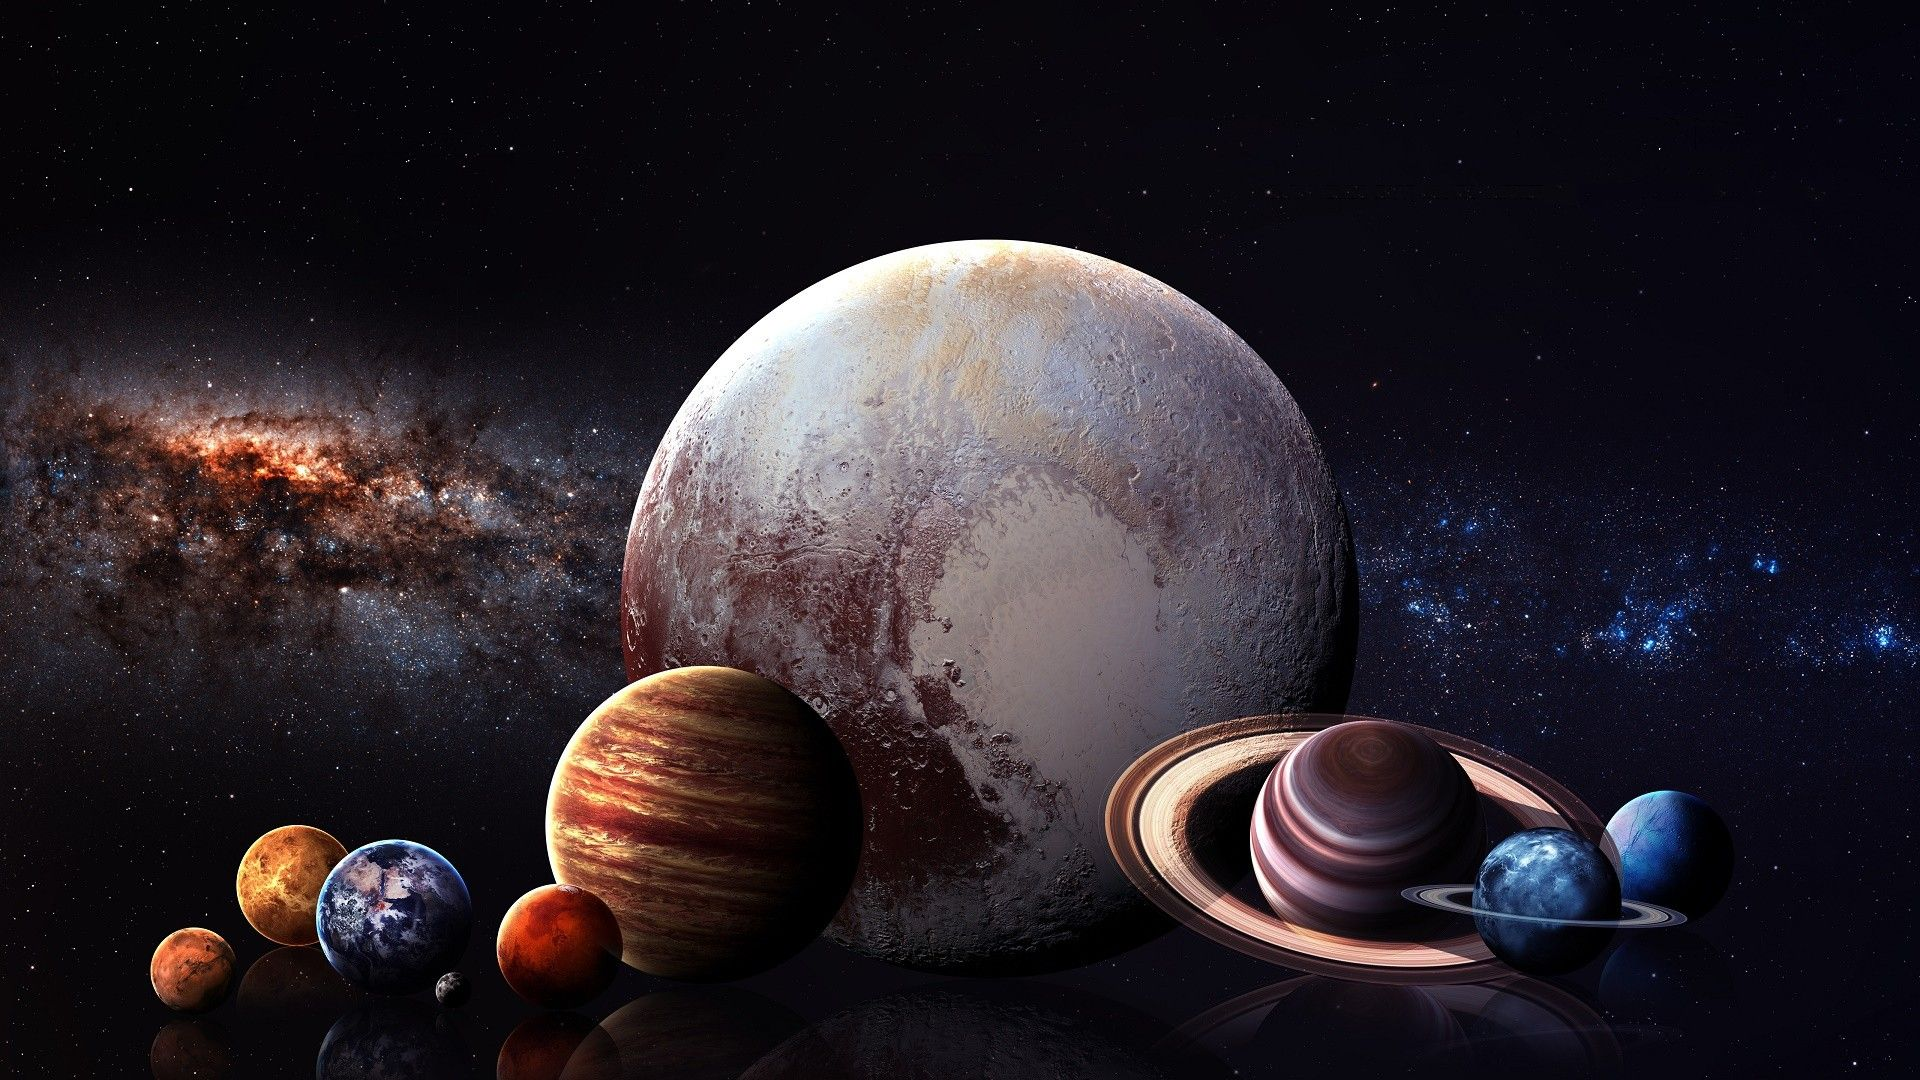 Solar System Wallpapers - Top Free Solar System ...